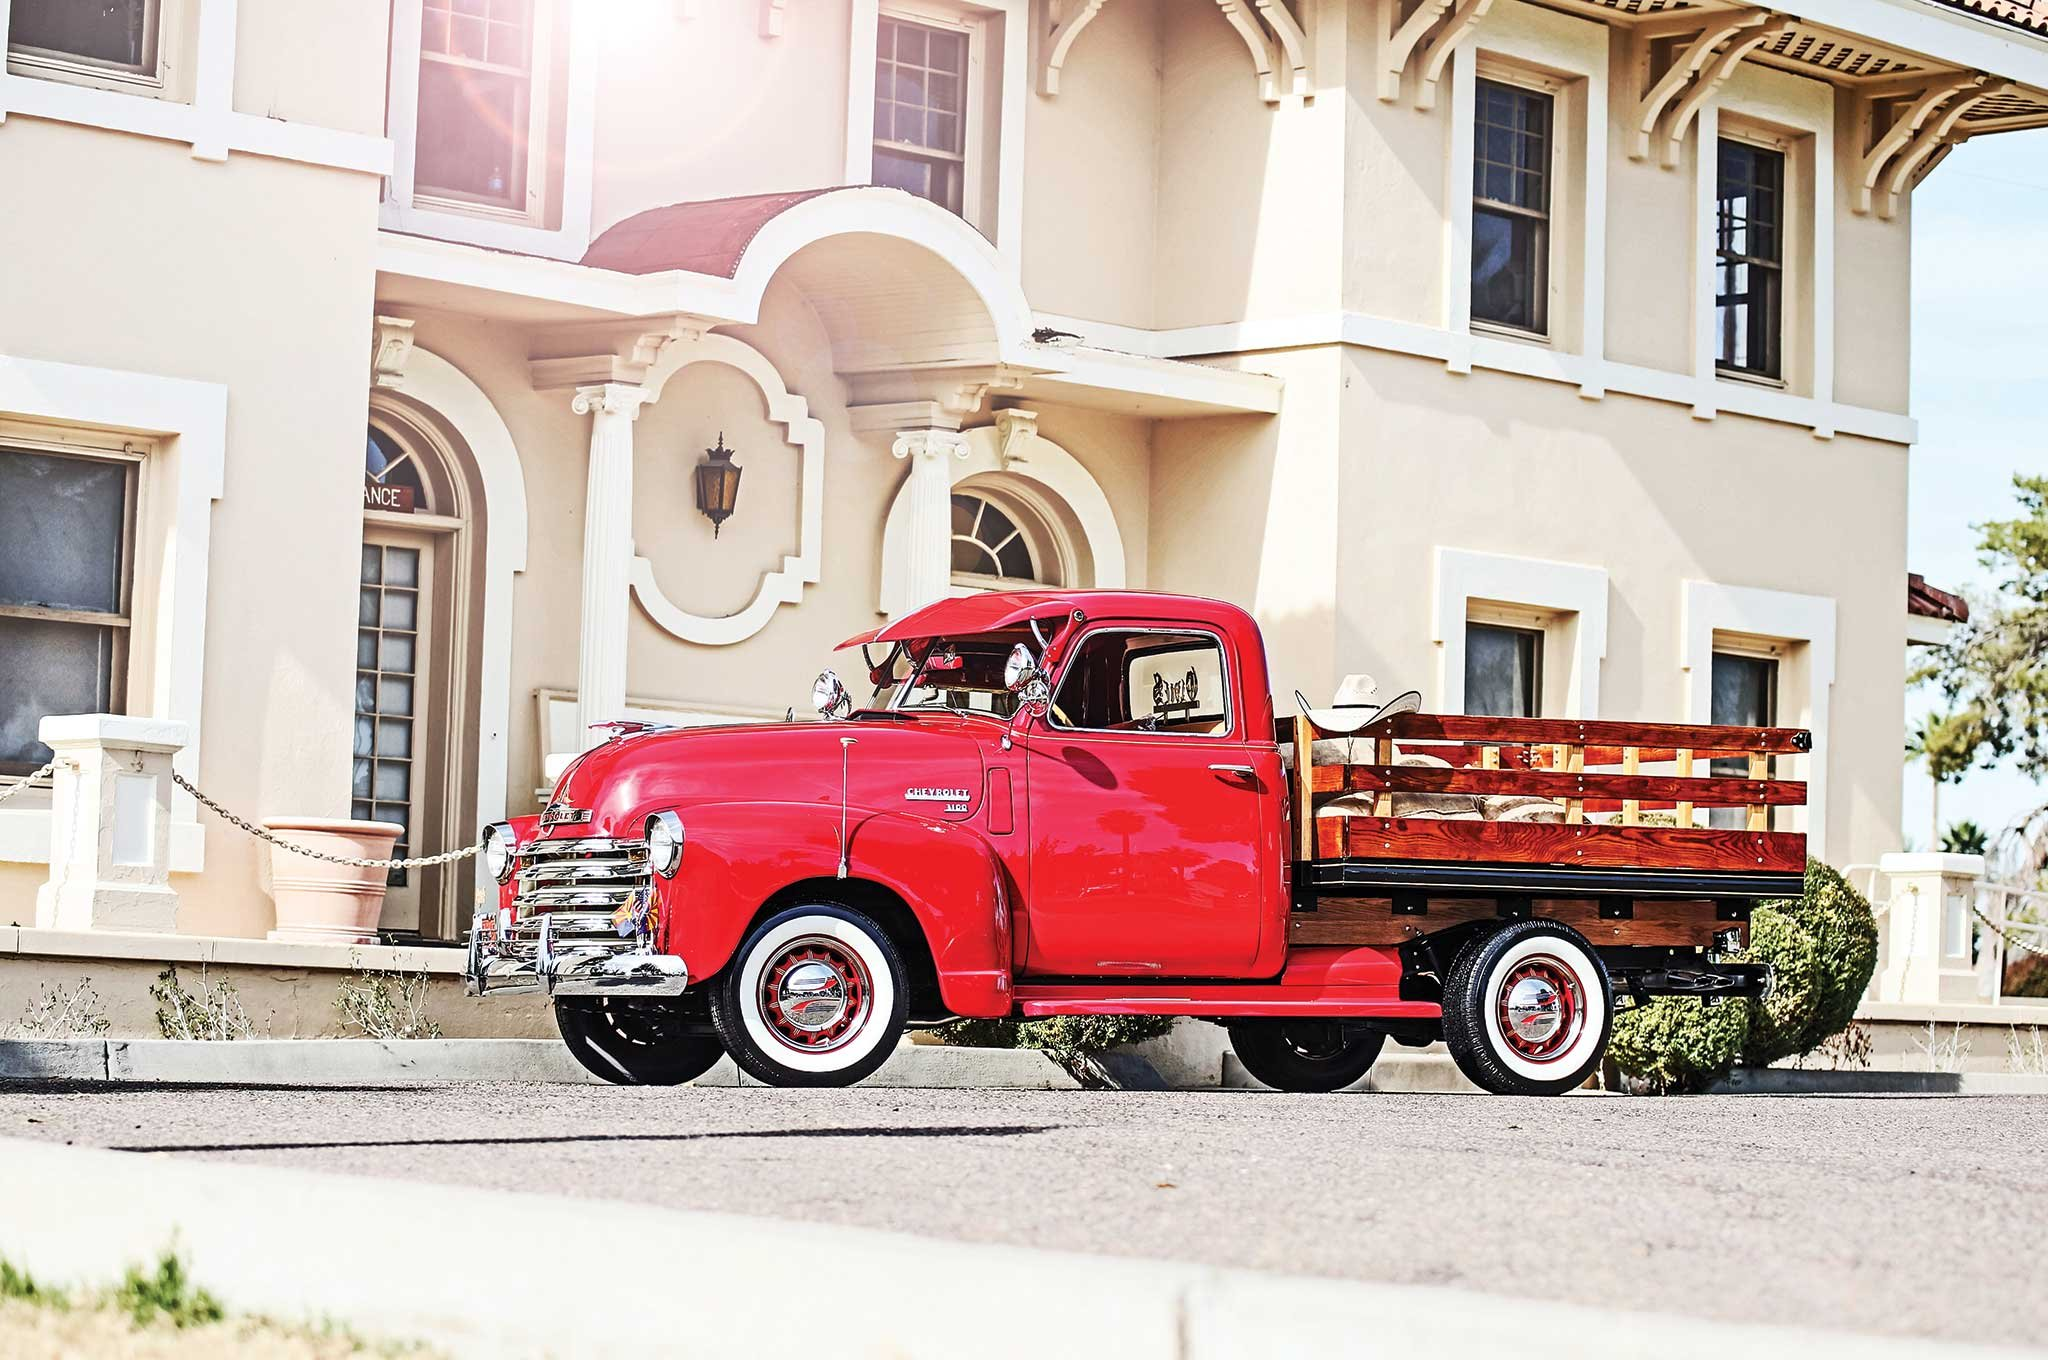 1949 Chevy 3100 Stake Bed Custom Pickup Tuning Hot Rods Rod Gangsta Truck Lowrider Wallpaper 2048x1360 975085 Wallpaperup